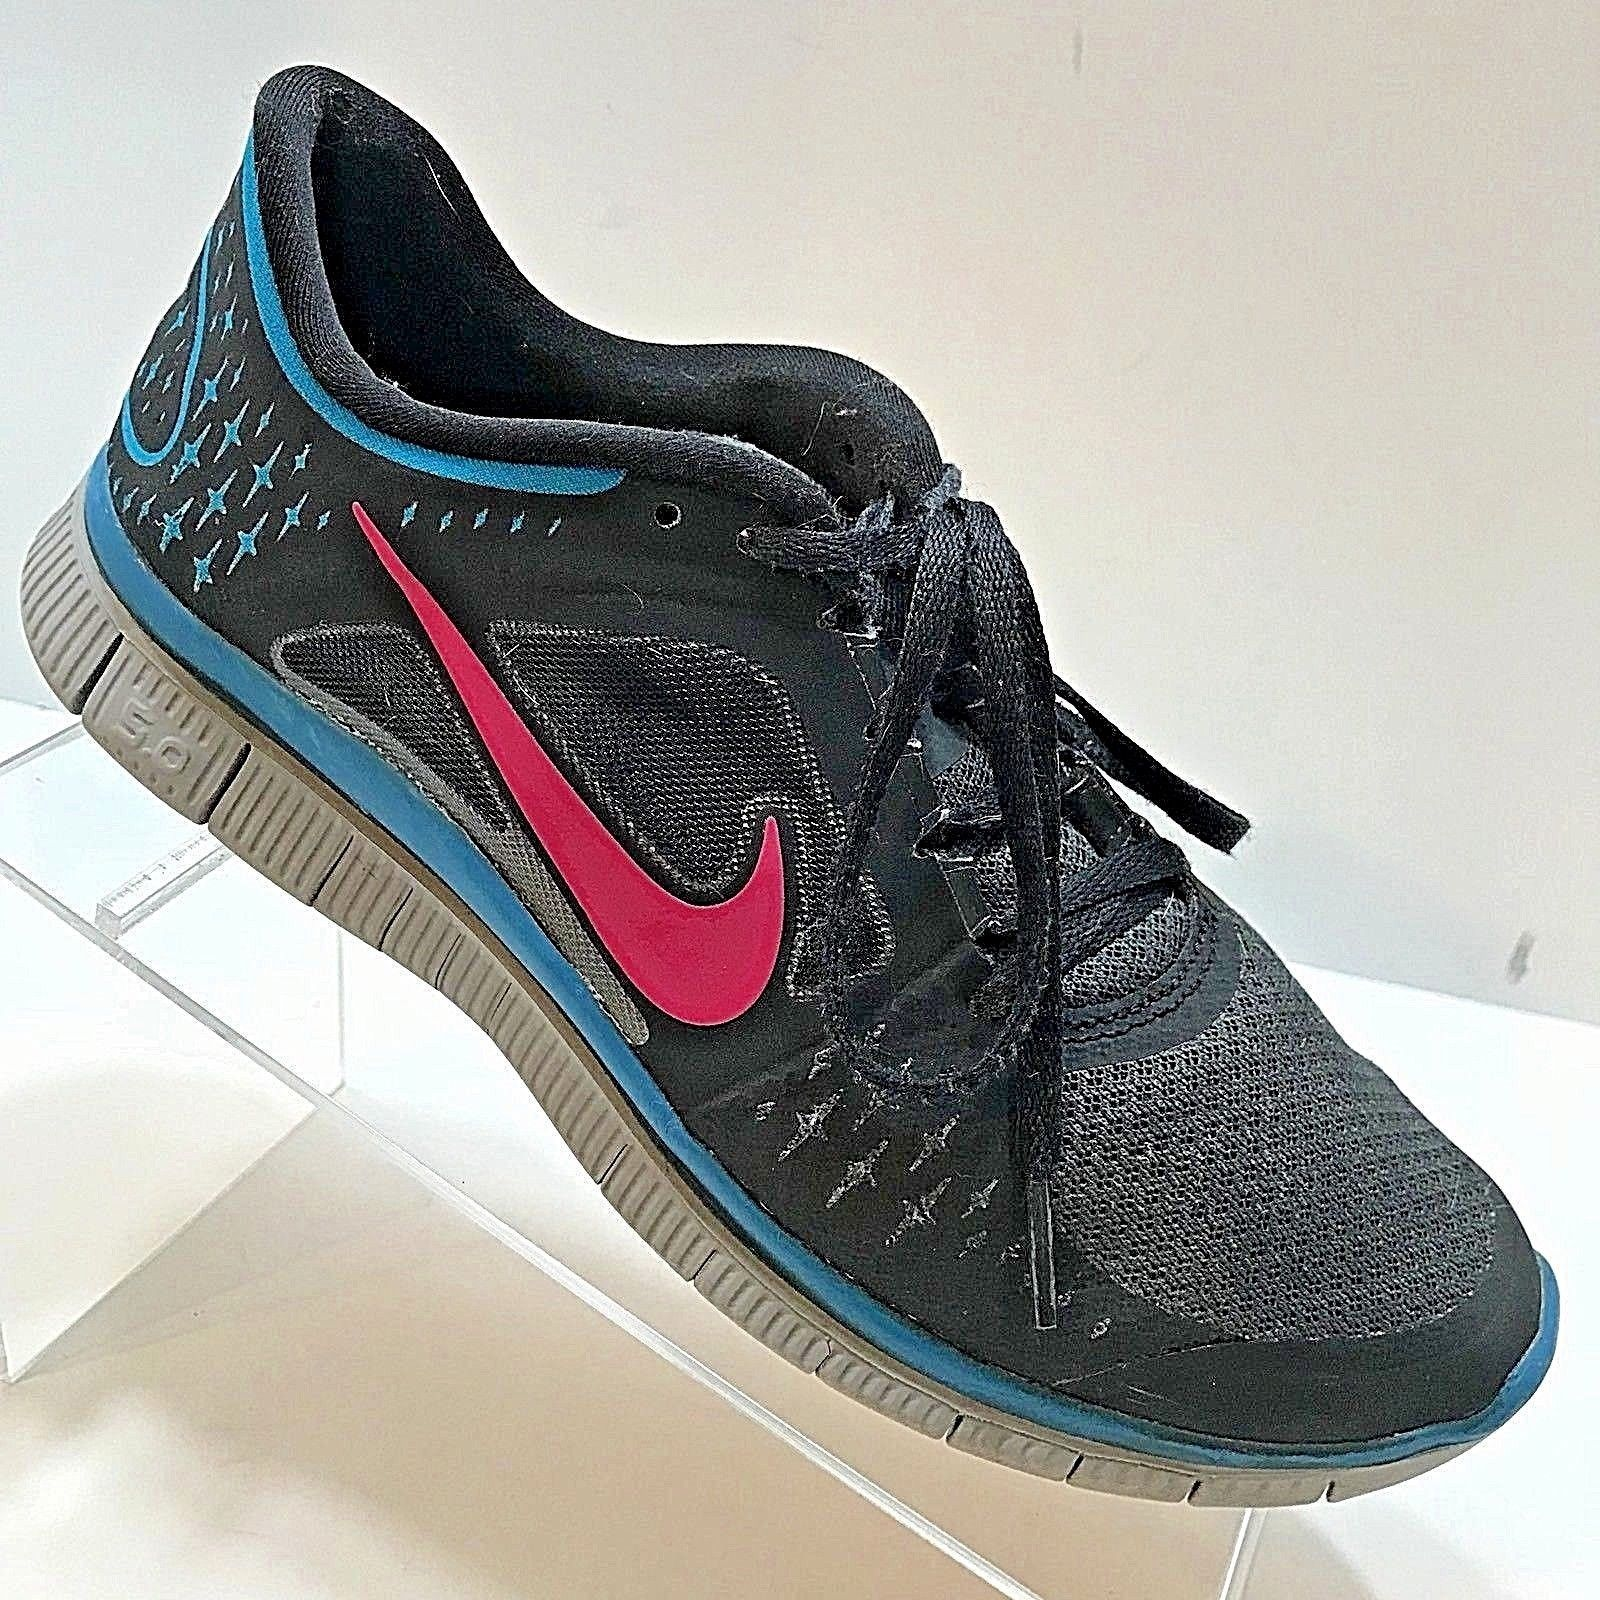 8d1df7bf5322 Nike Free Run 3 Black Running Shoes Pink and 50 similar items. S l1600